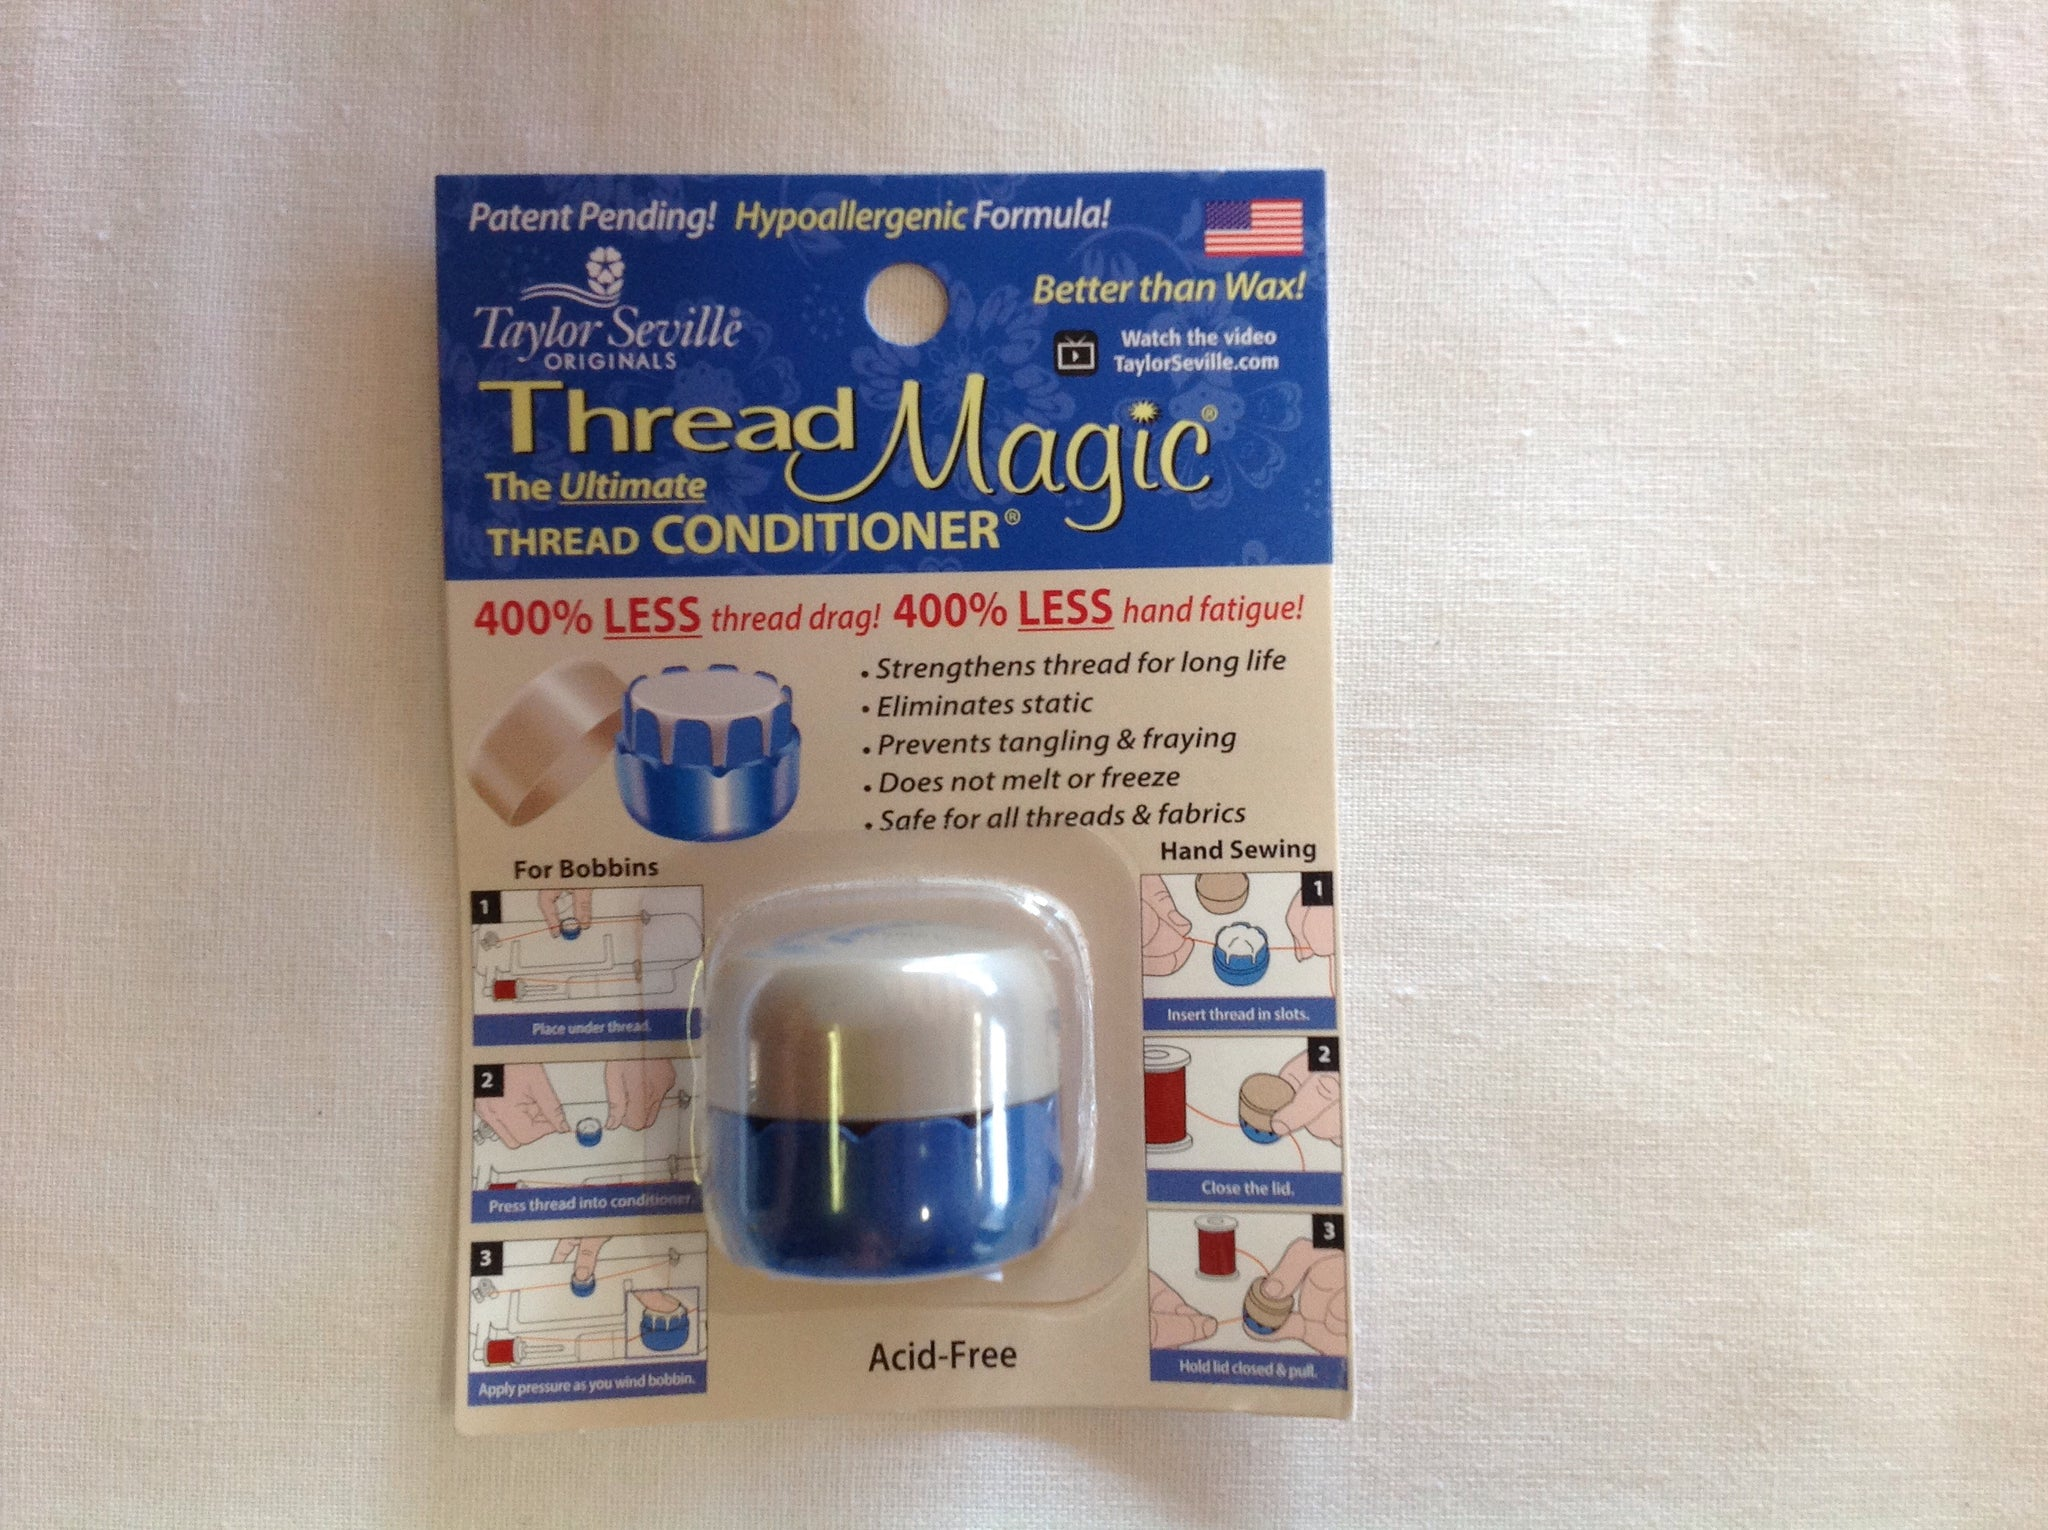 Thread Magic - The Ultimate Thread Conditioner